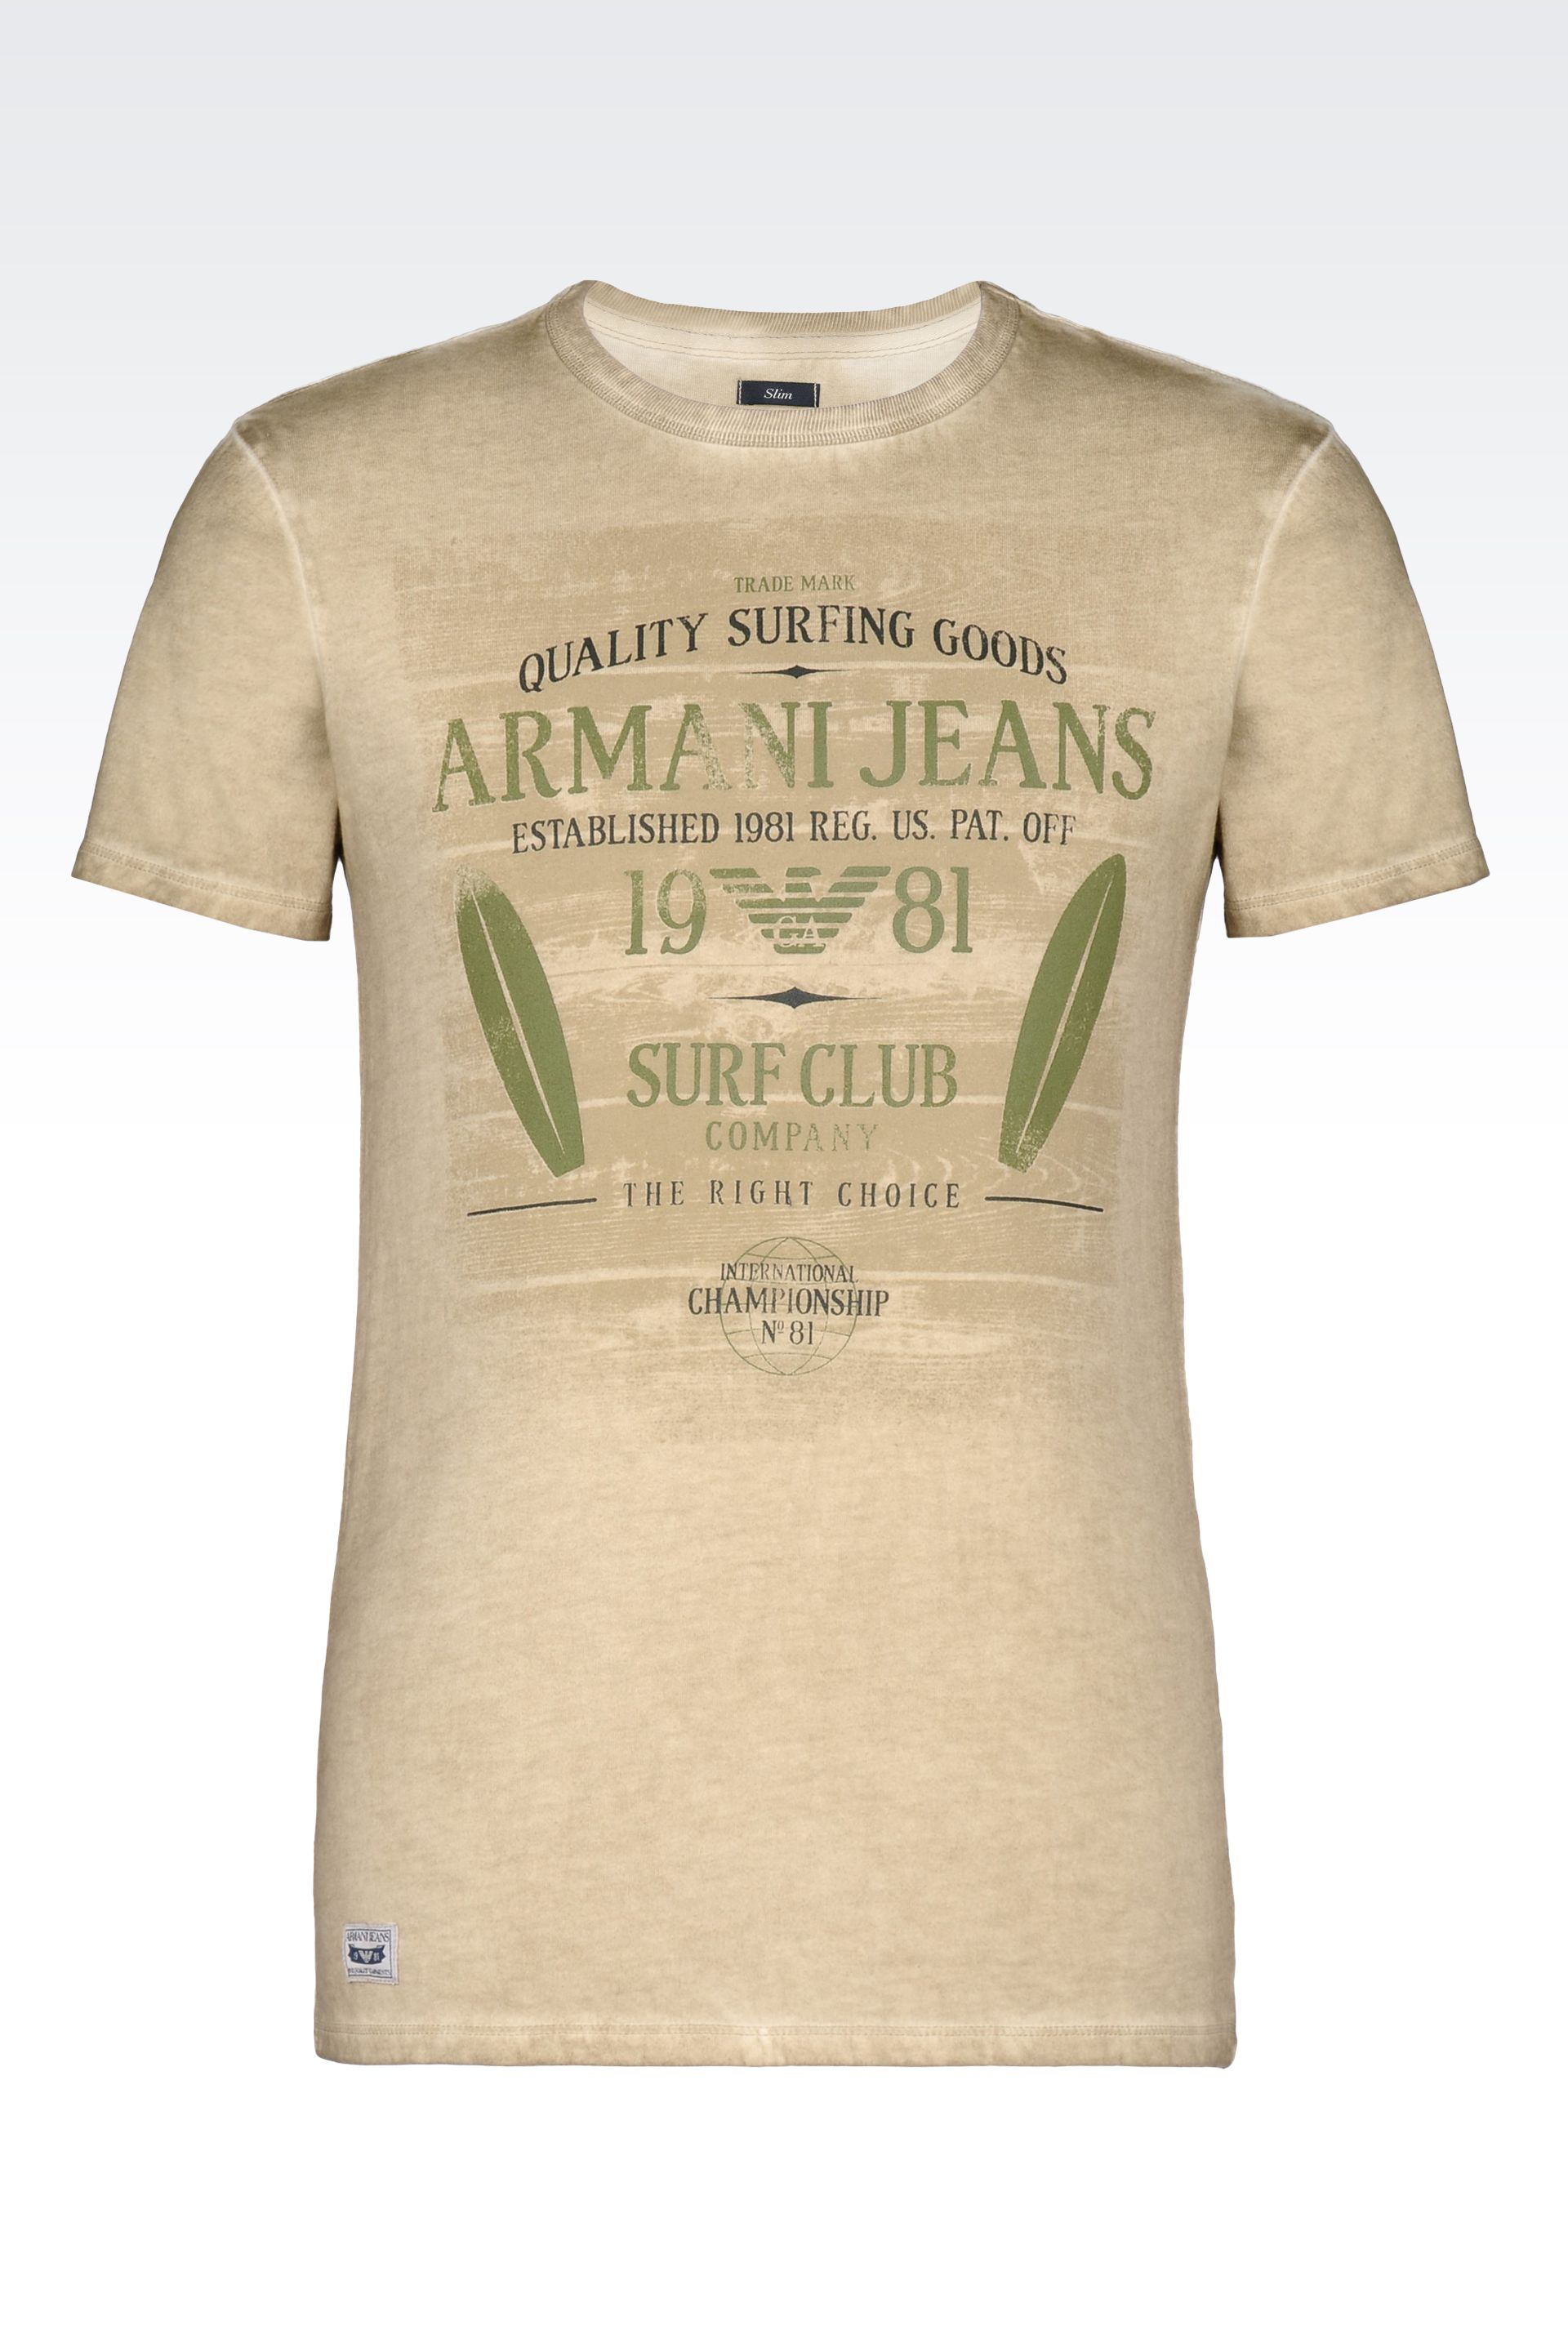 lyst armani jeans t shirt in cotton jersey in natural for men. Black Bedroom Furniture Sets. Home Design Ideas